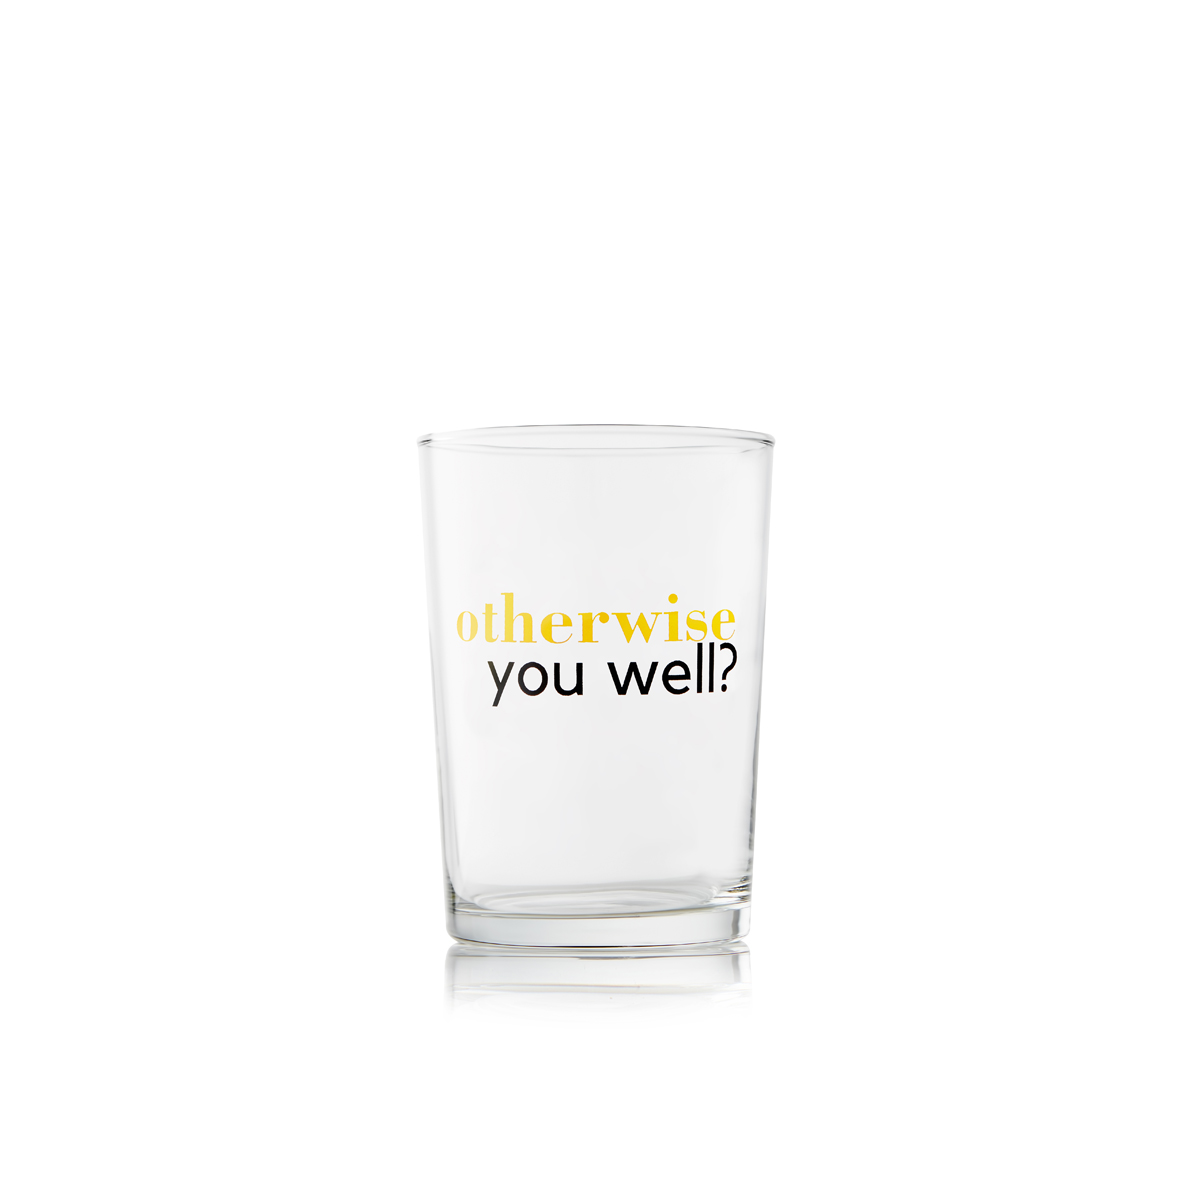 Brew Glass - Otherwise, you well?